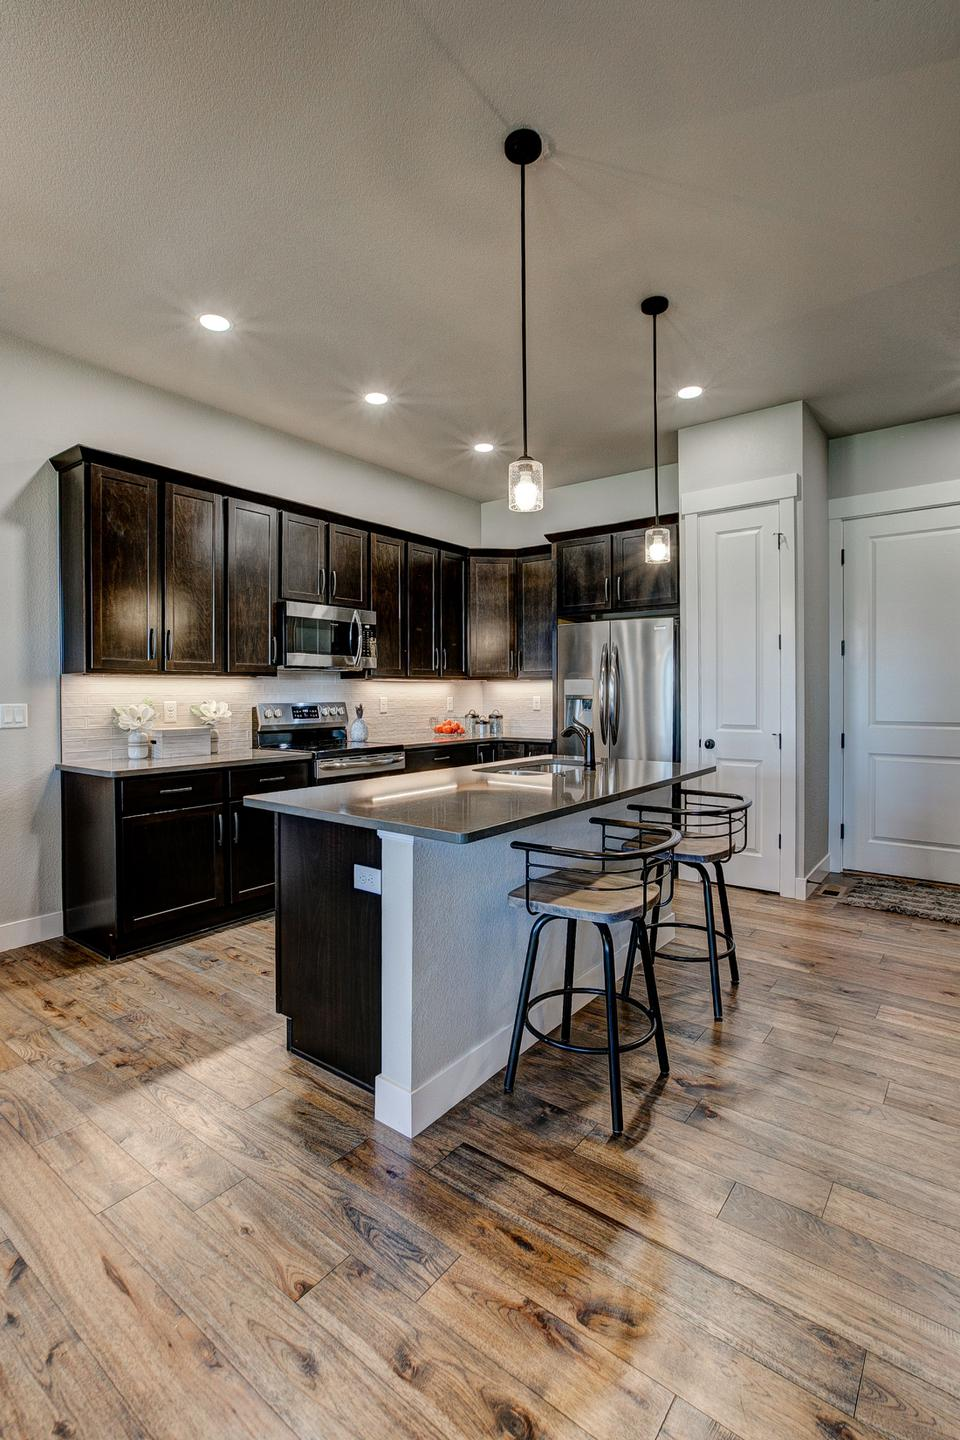 Kitchen - Not Actual Home - Finishes Will Vary . 1,738sf New Home in Windsor, CO